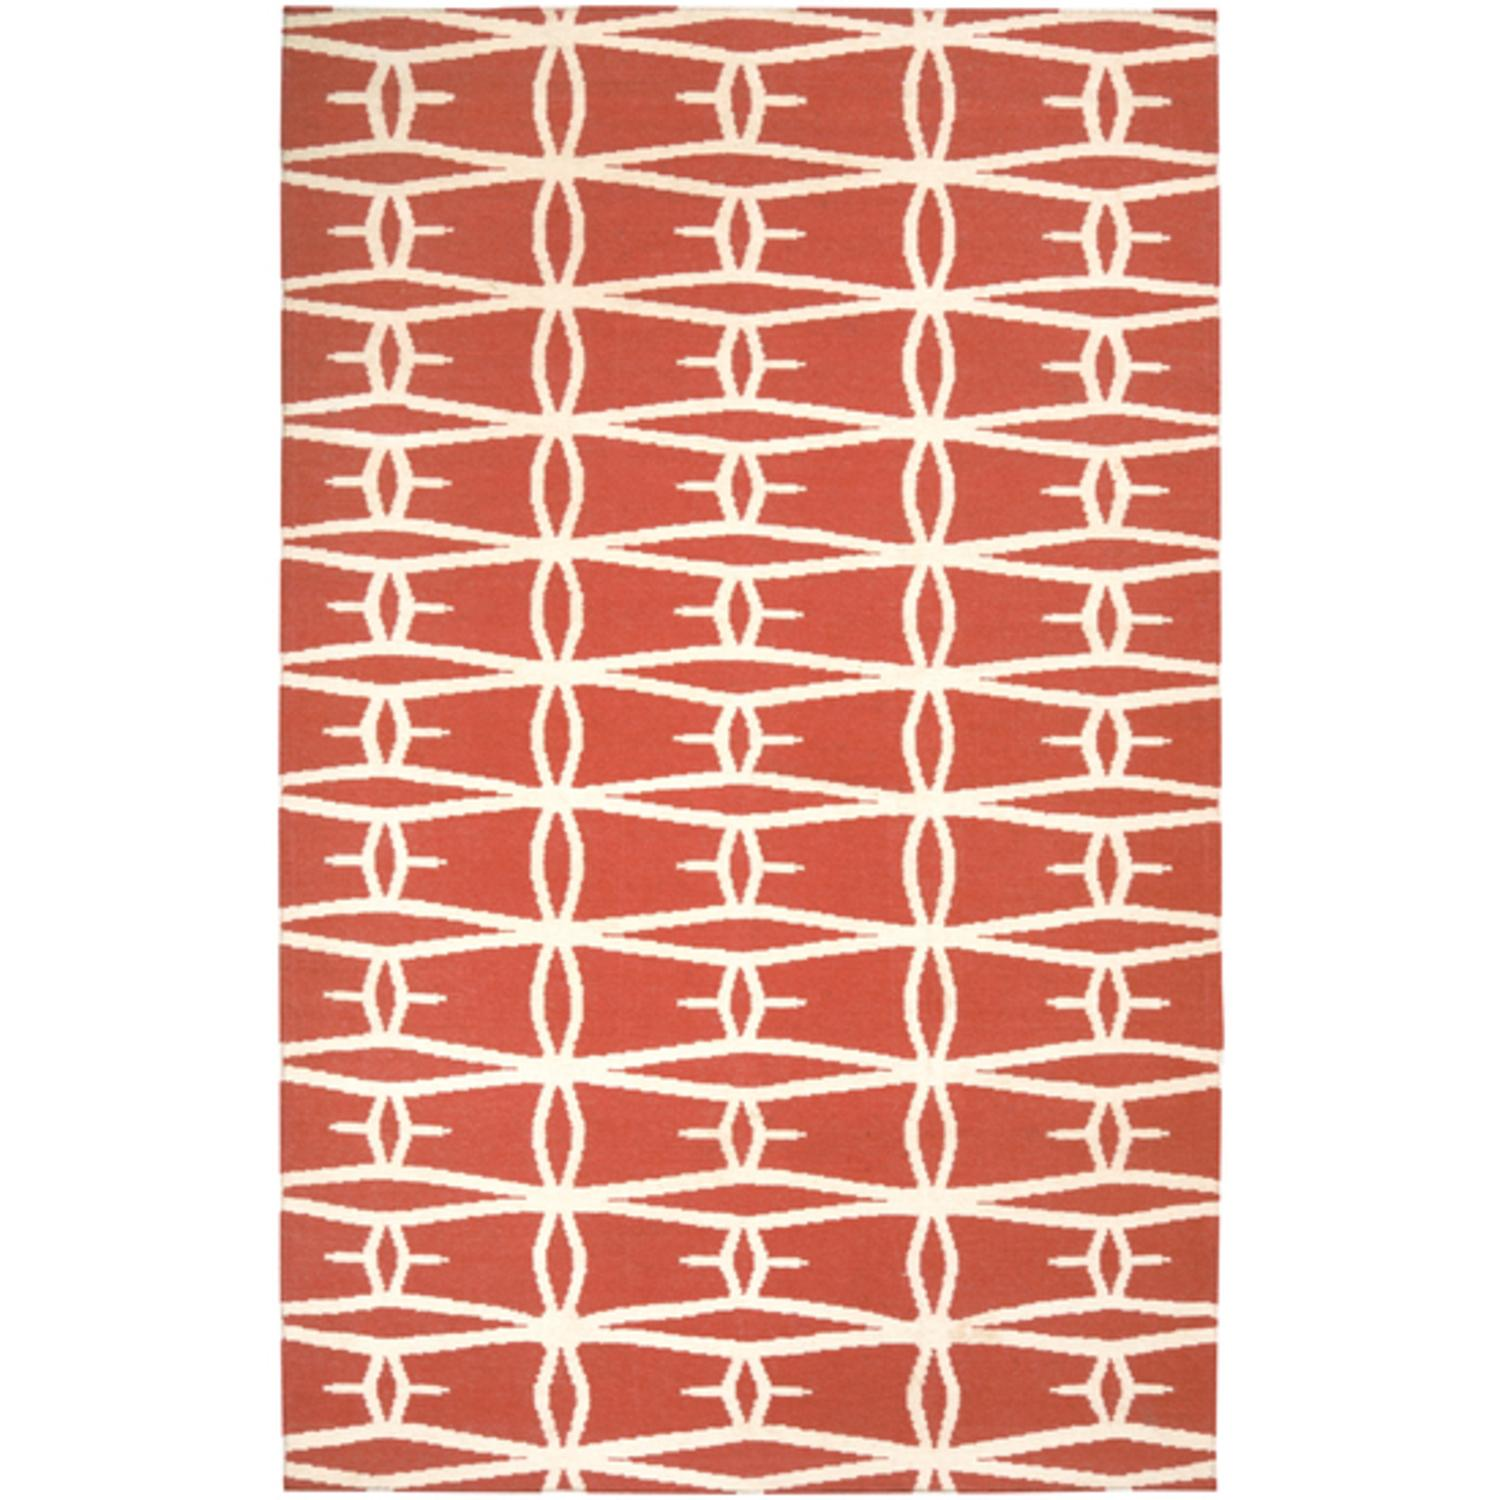 2.5' x 8' Barb Wire Sunset Poppy Red Wool Area Throw Rug